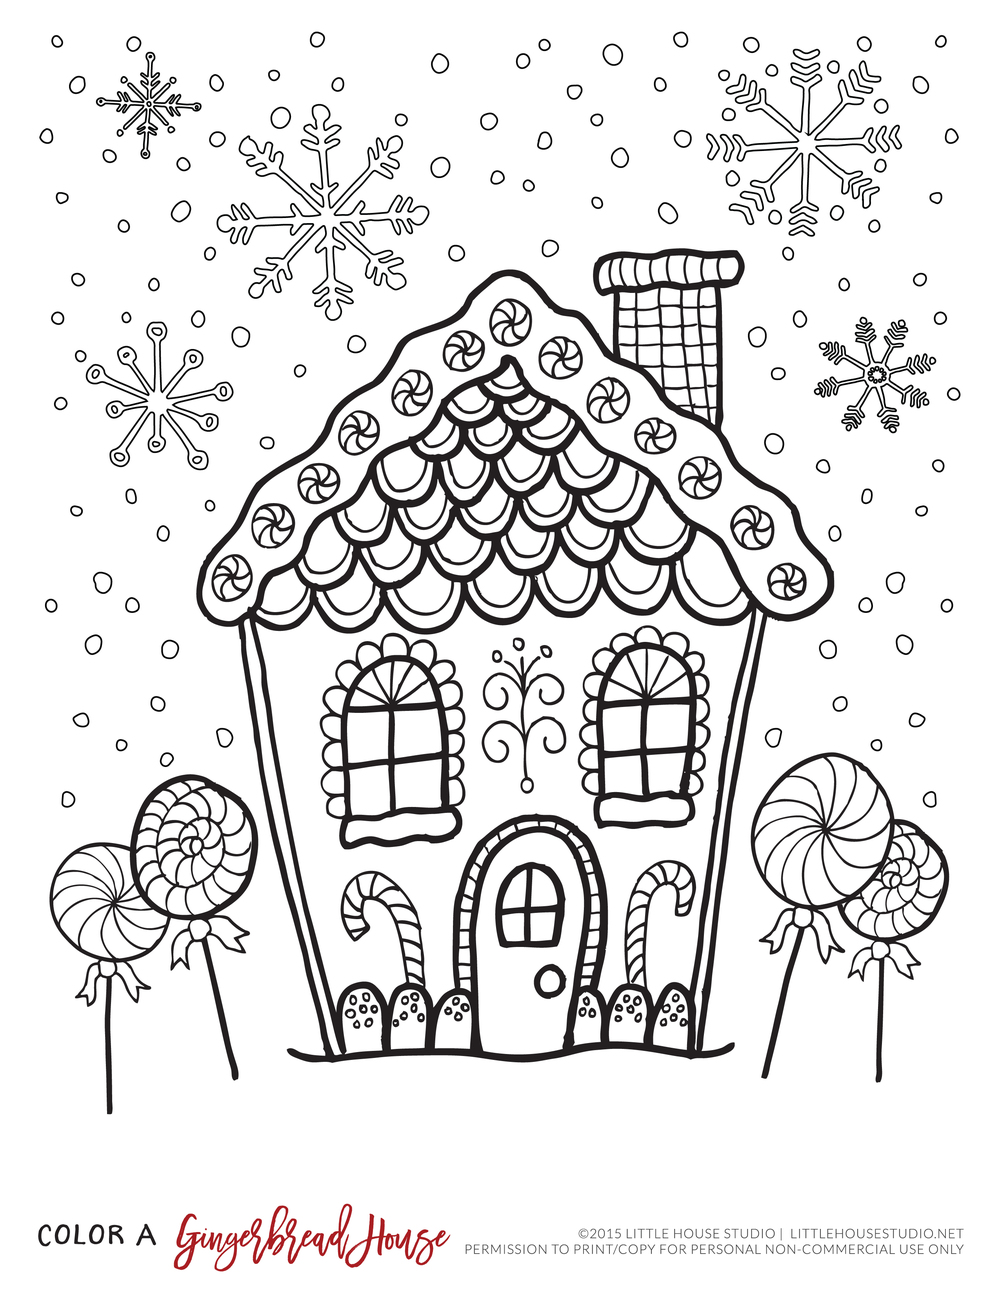 Free Printables || Little House Studio